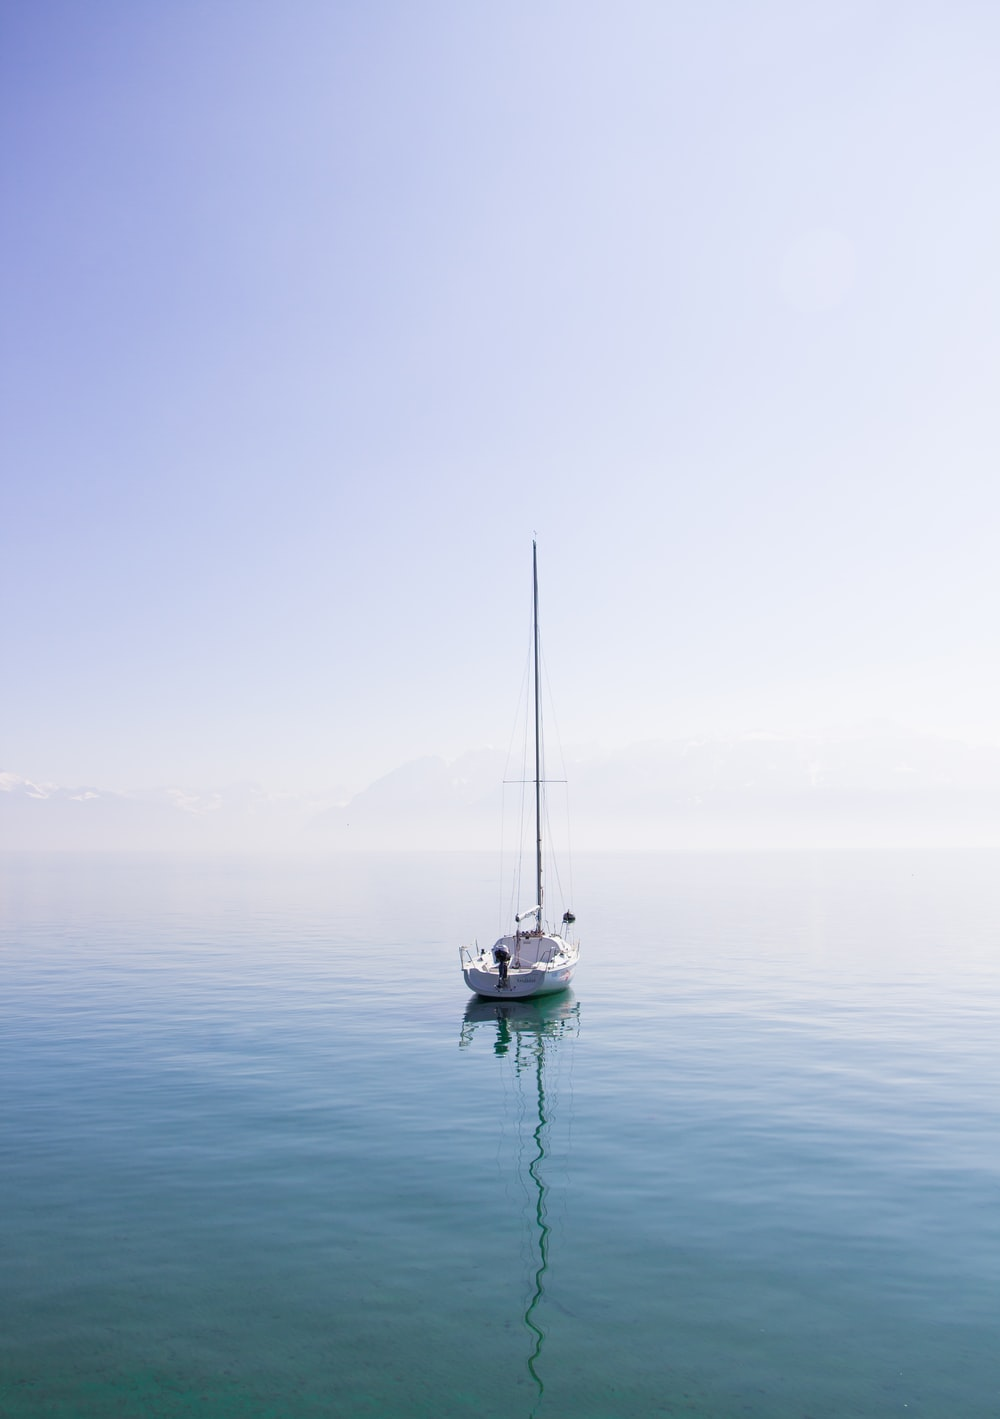 white boat on a body of water